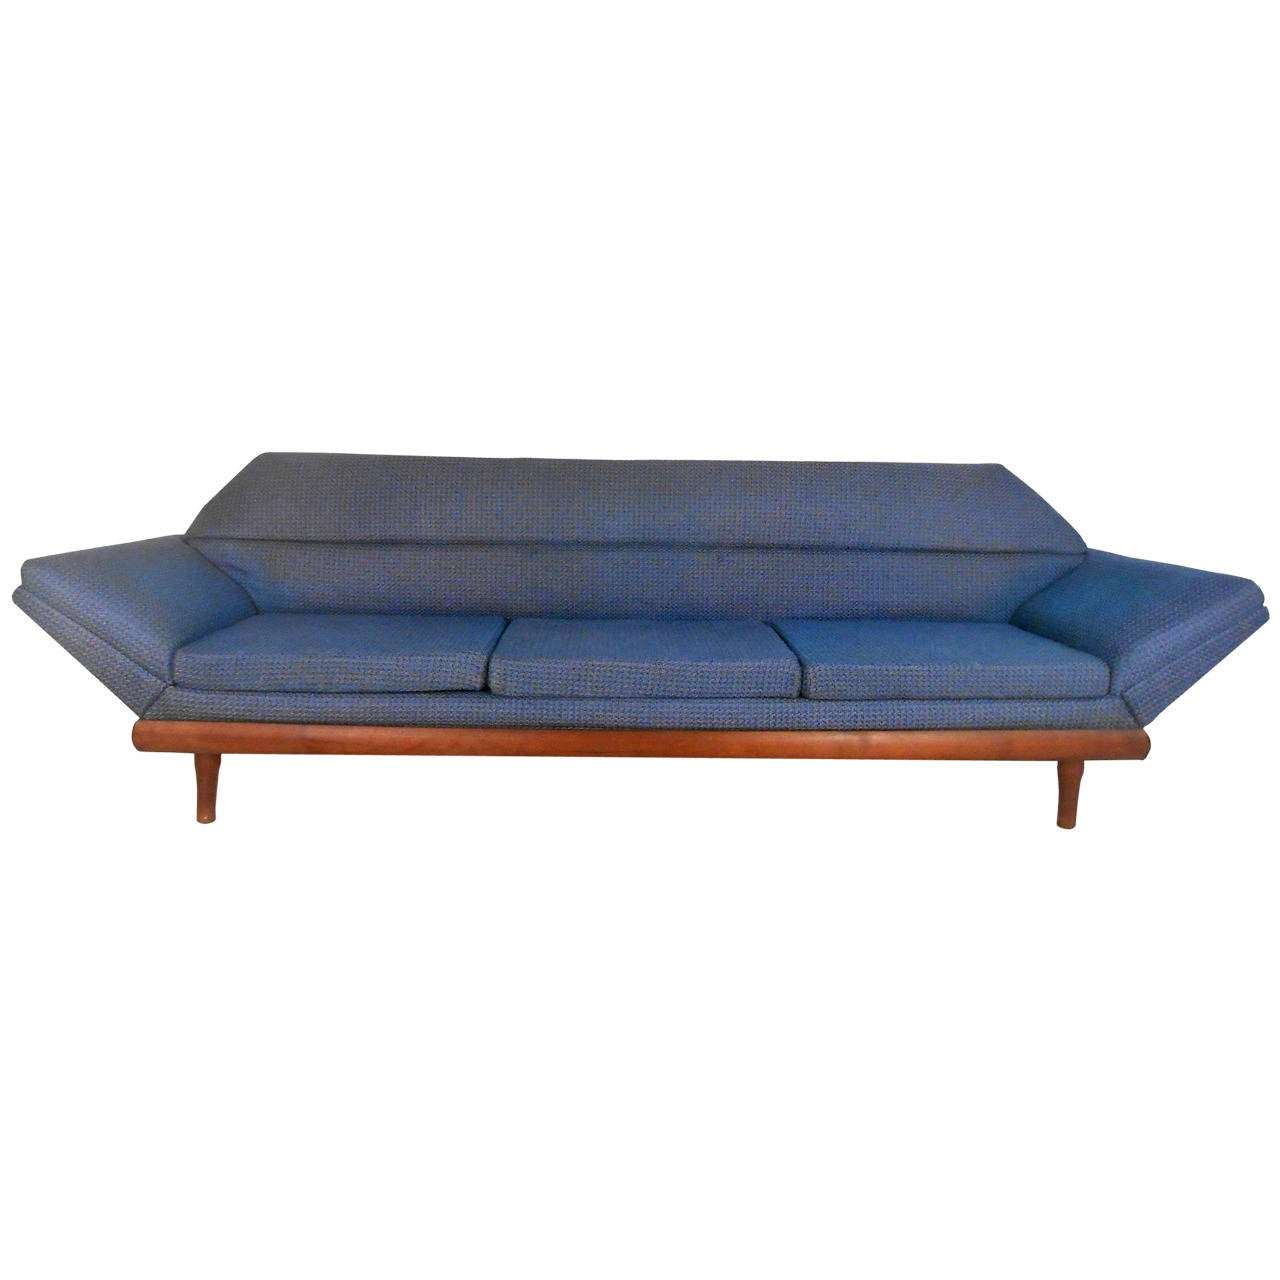 mid century modern adrian pearsall style sofa. Black Bedroom Furniture Sets. Home Design Ideas